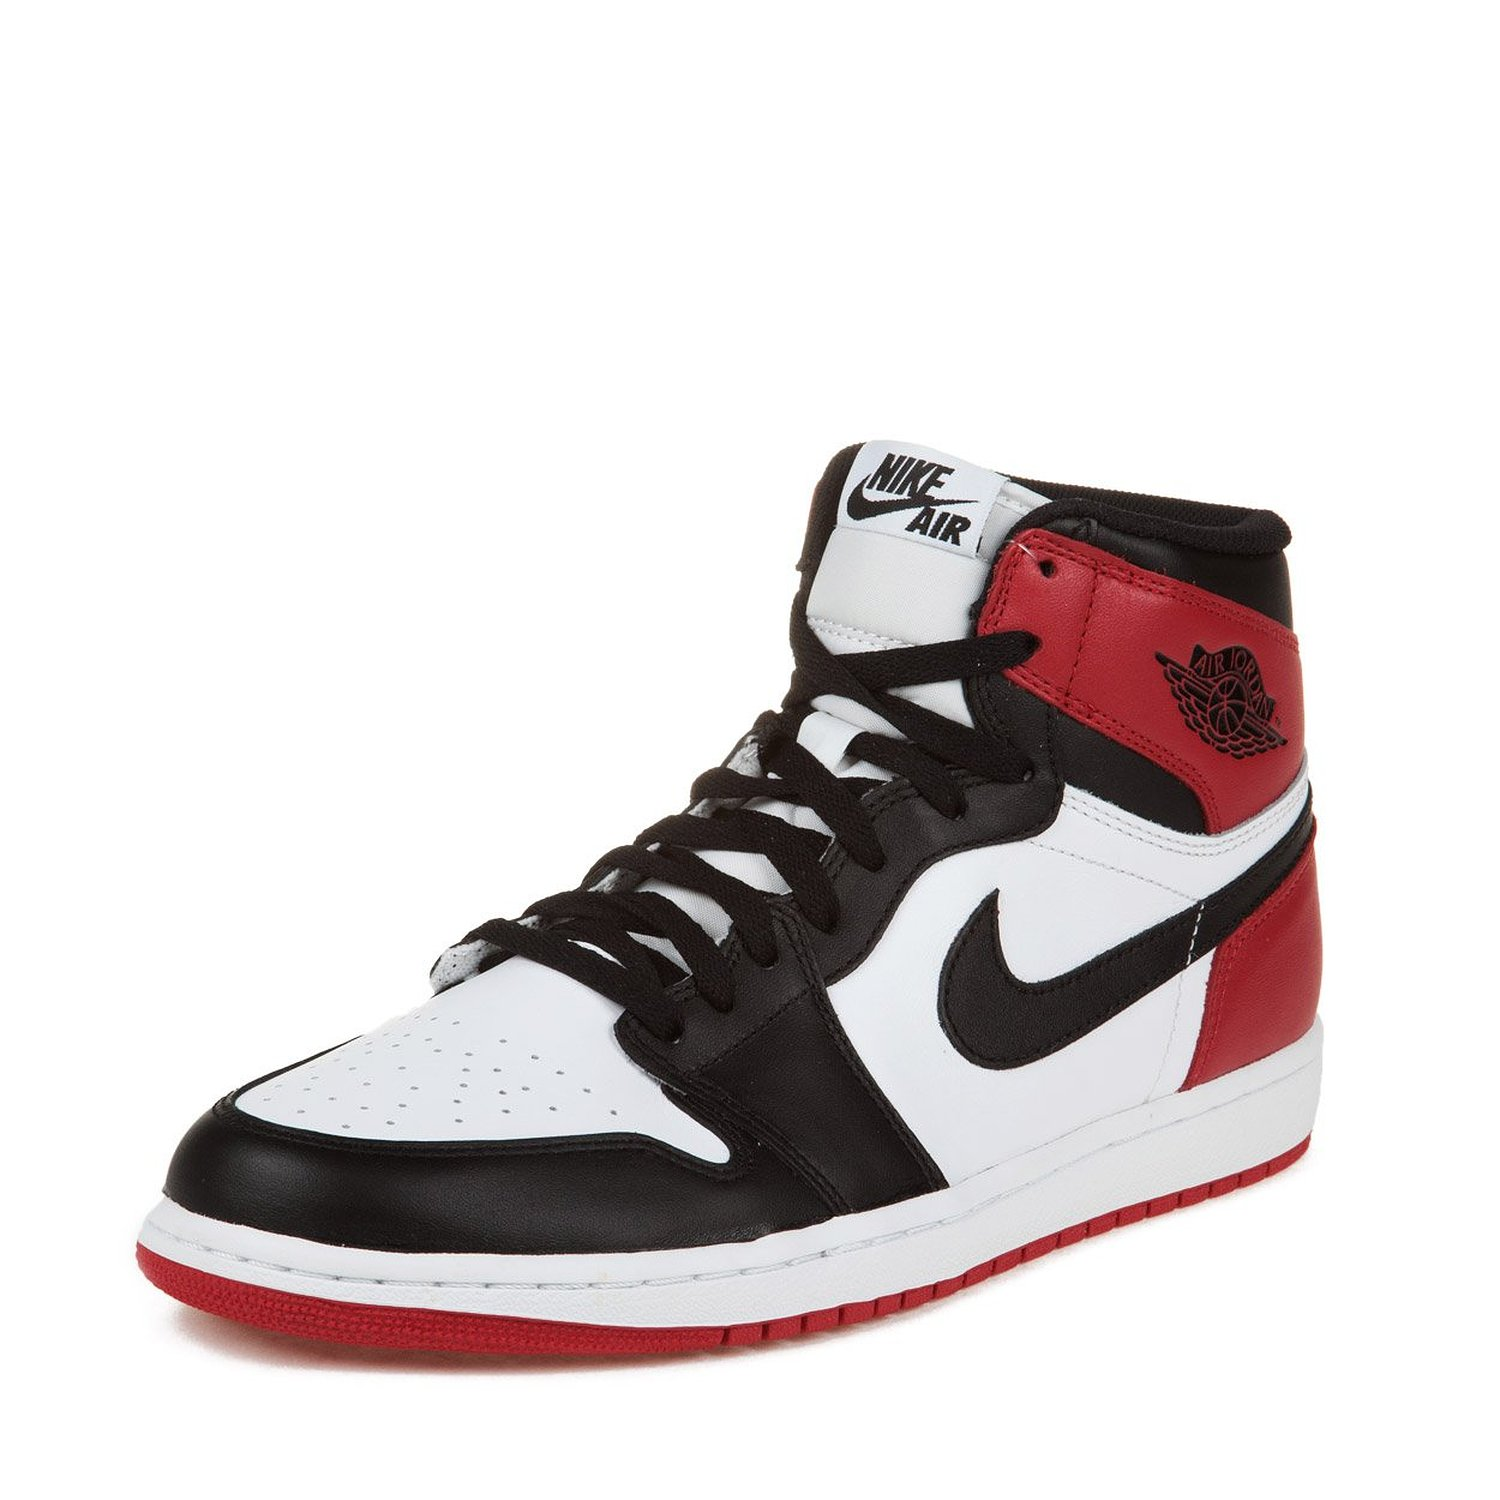 "Nike Mens Air Jordan 1 Retro High OG ""Black Toe"" Leather Basketball Shoes"